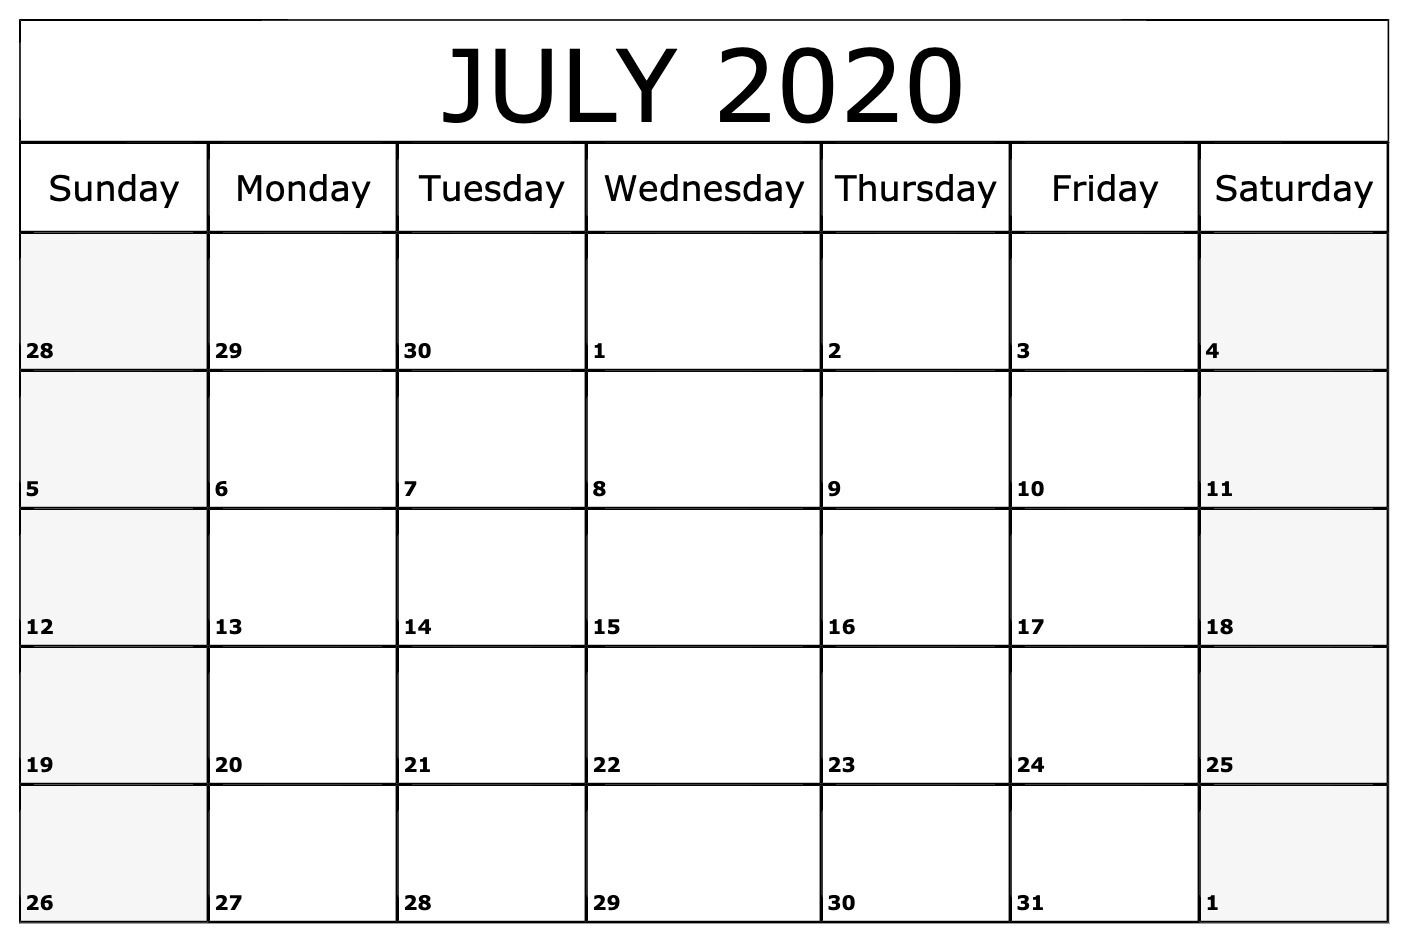 July 2020 Calendar Printable Blank Template With Notes 2020